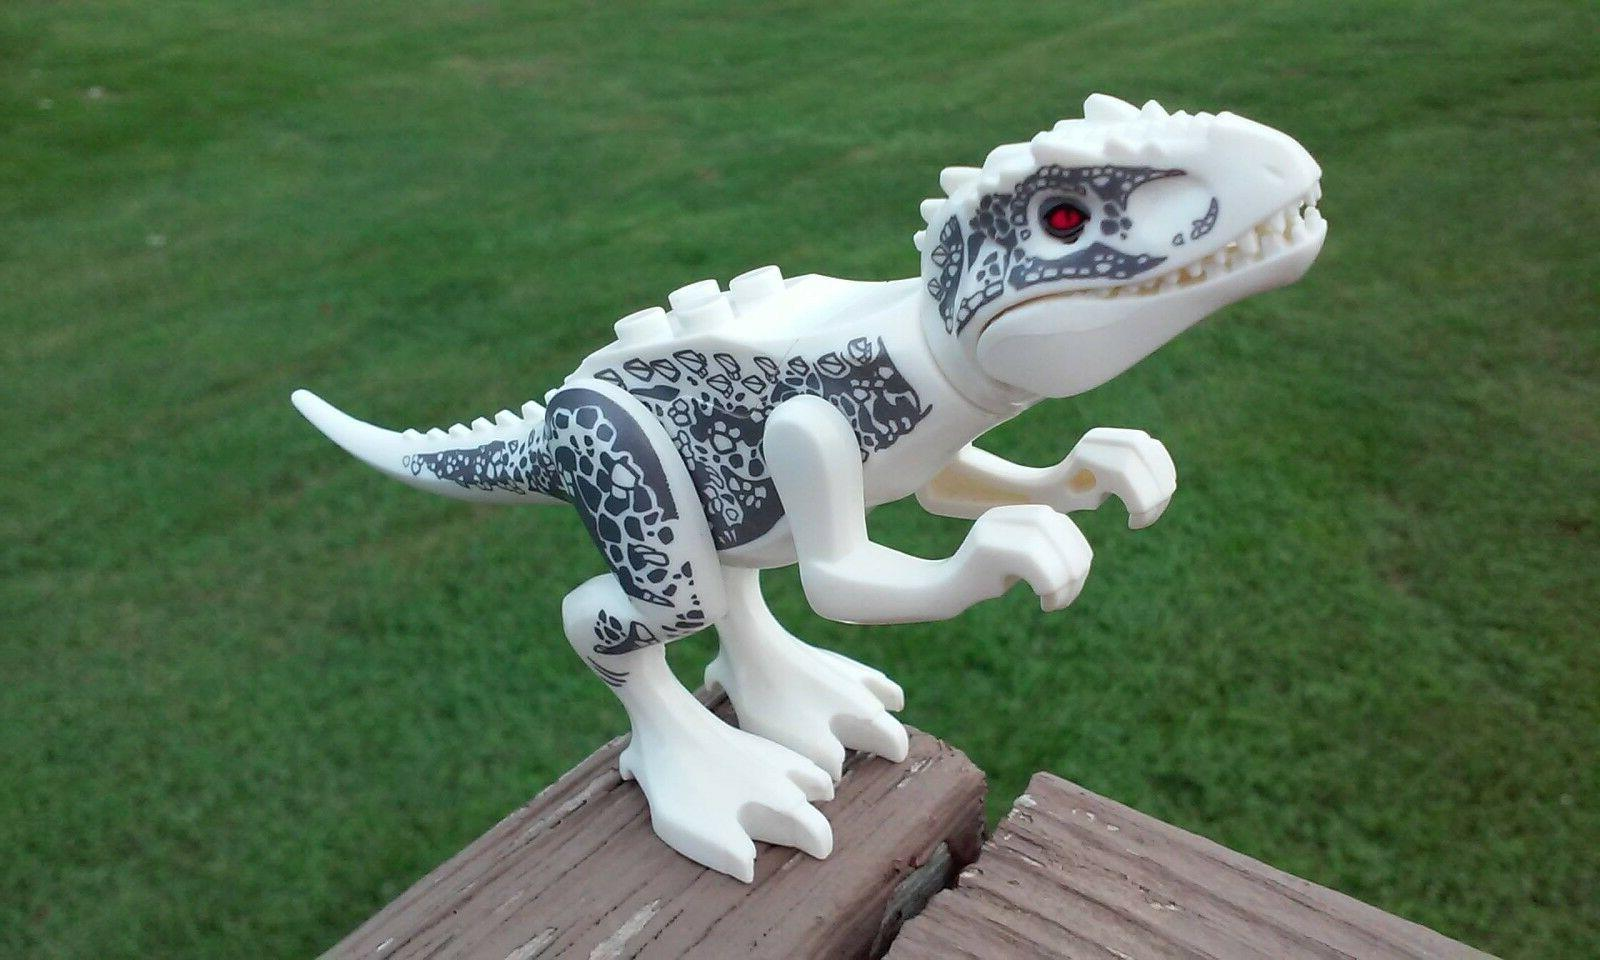 Jurassic World Indominus Rex Dinosaur Figure New